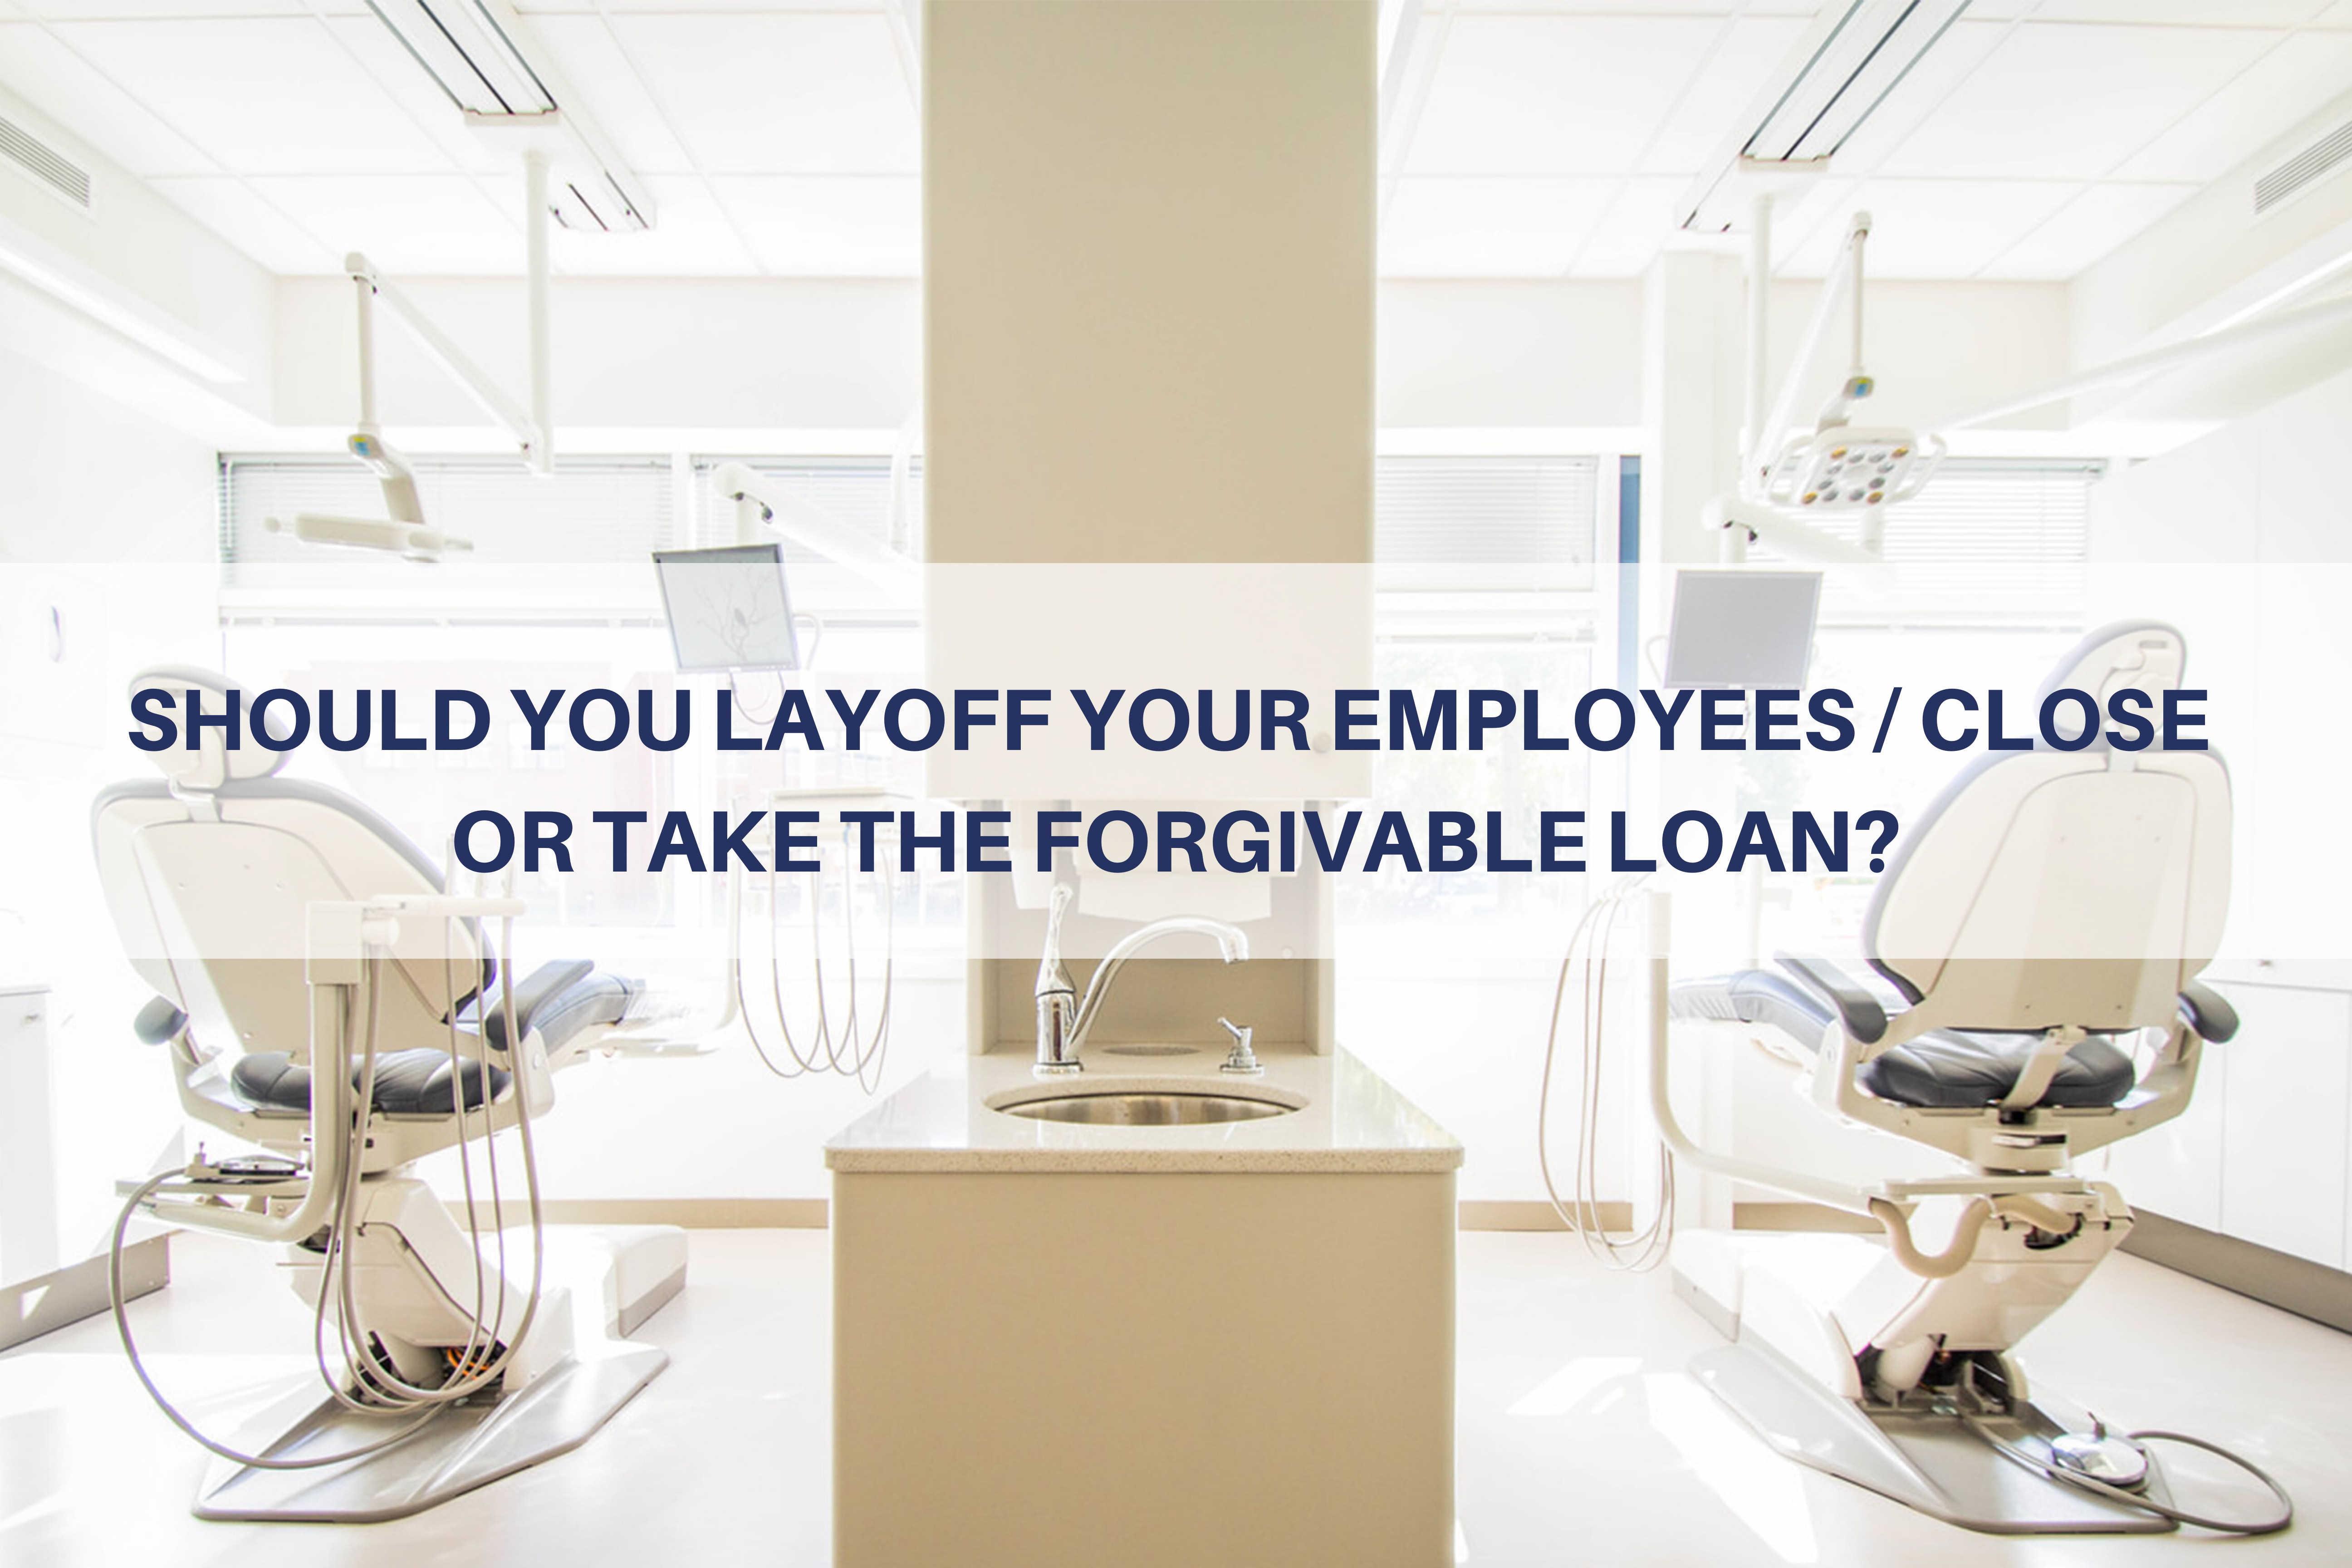 Dentists: Should you layoff your employees OR take the forgivable loan (PPP)? Thumbnail